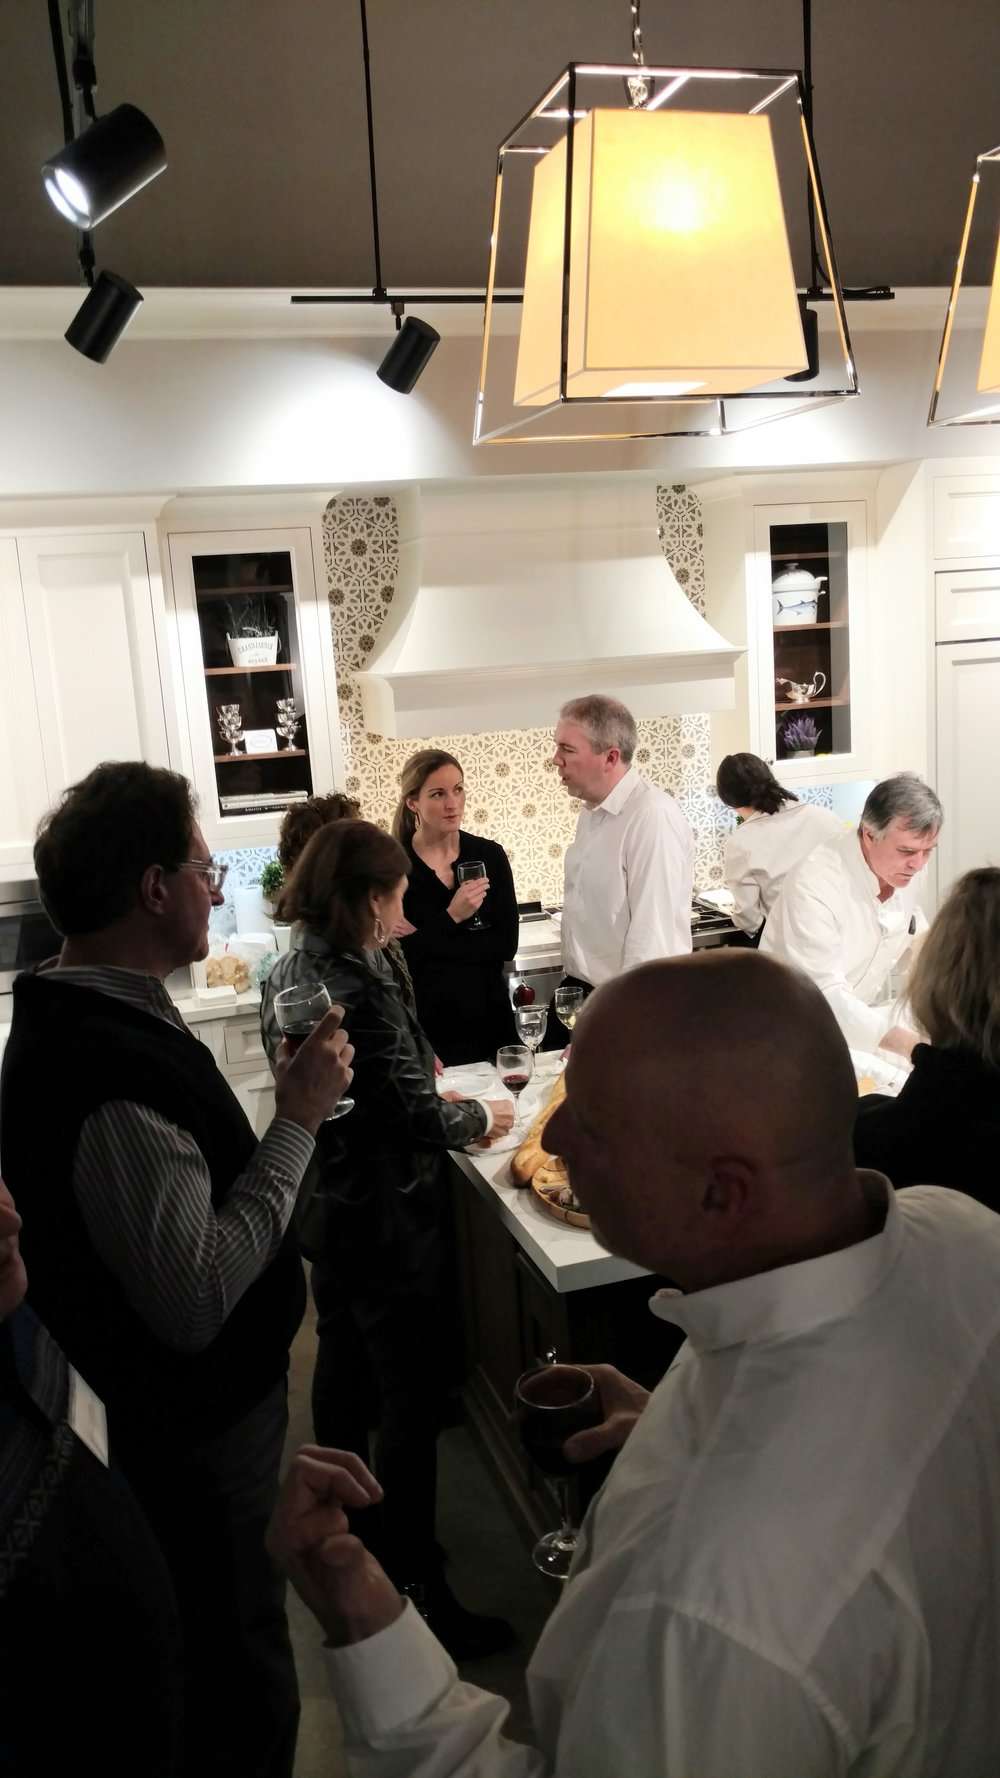 curry-kingston-event-space-greenwich.jpg